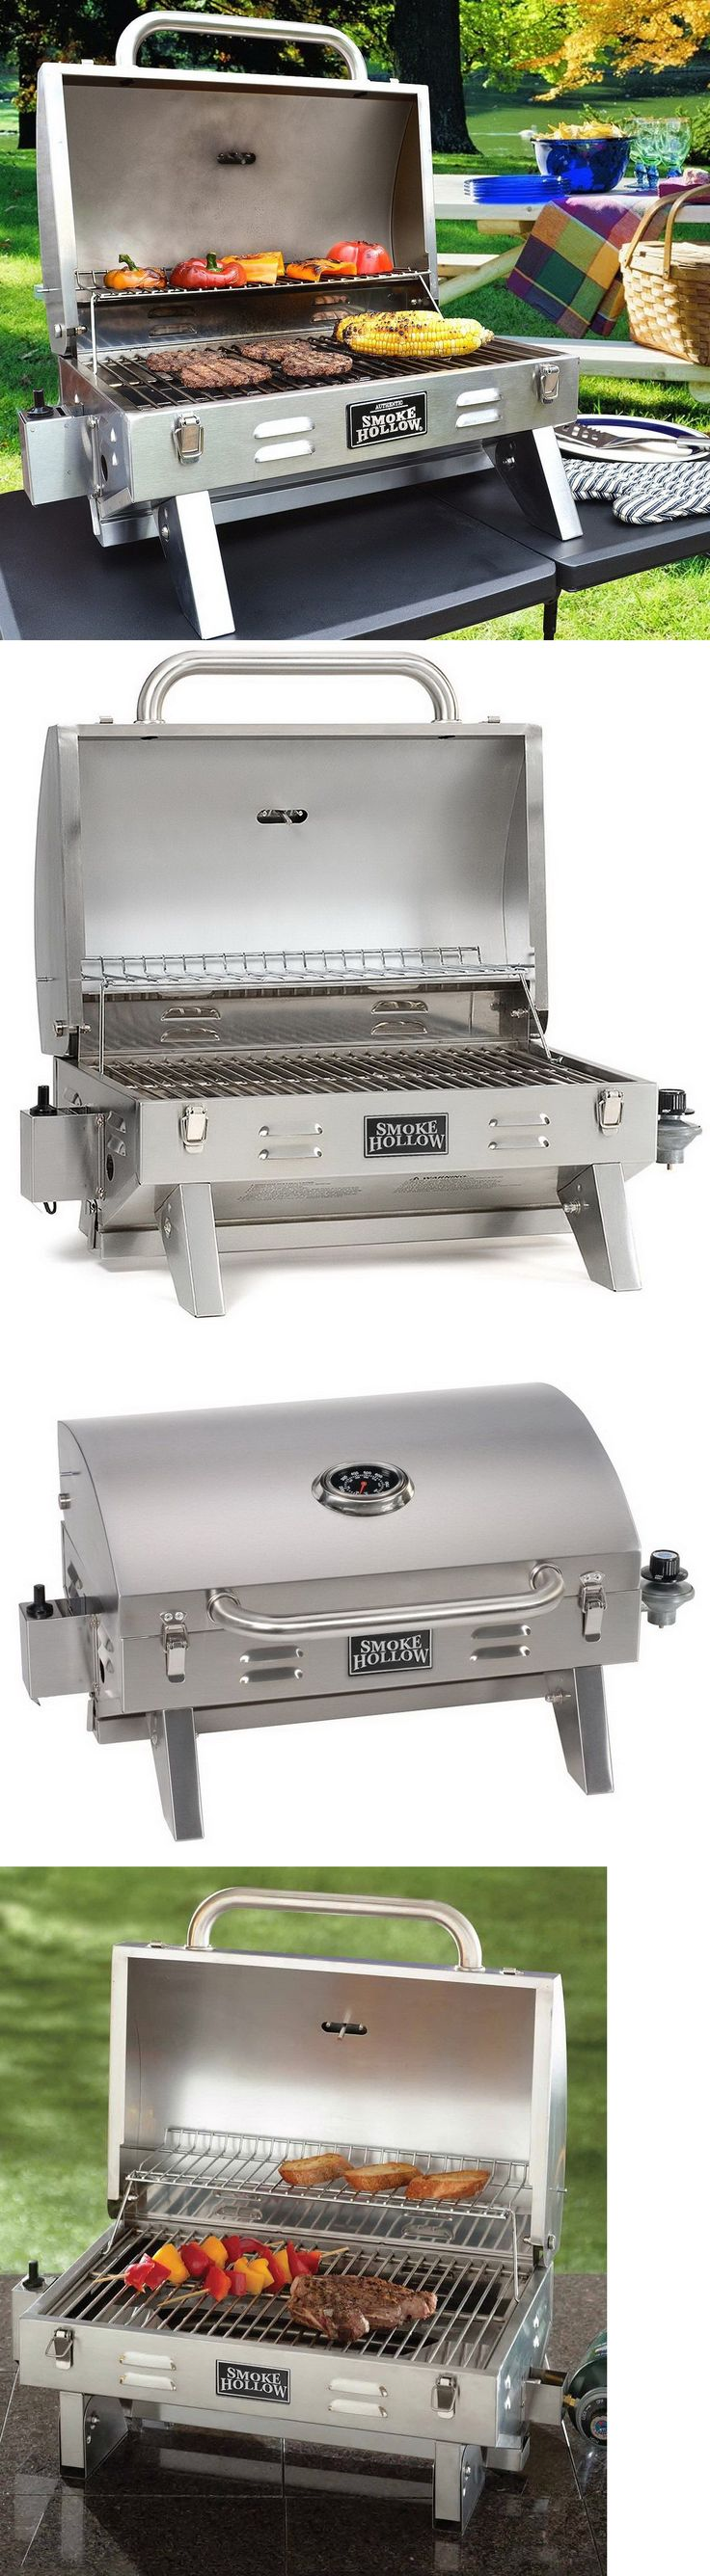 Barbecues Grills and Smokers 151621: New Portable Stainless Steel Gas Grill Tailgate Camping Grill Propane Tabletop -> BUY IT NOW ONLY: $99.28 on eBay!